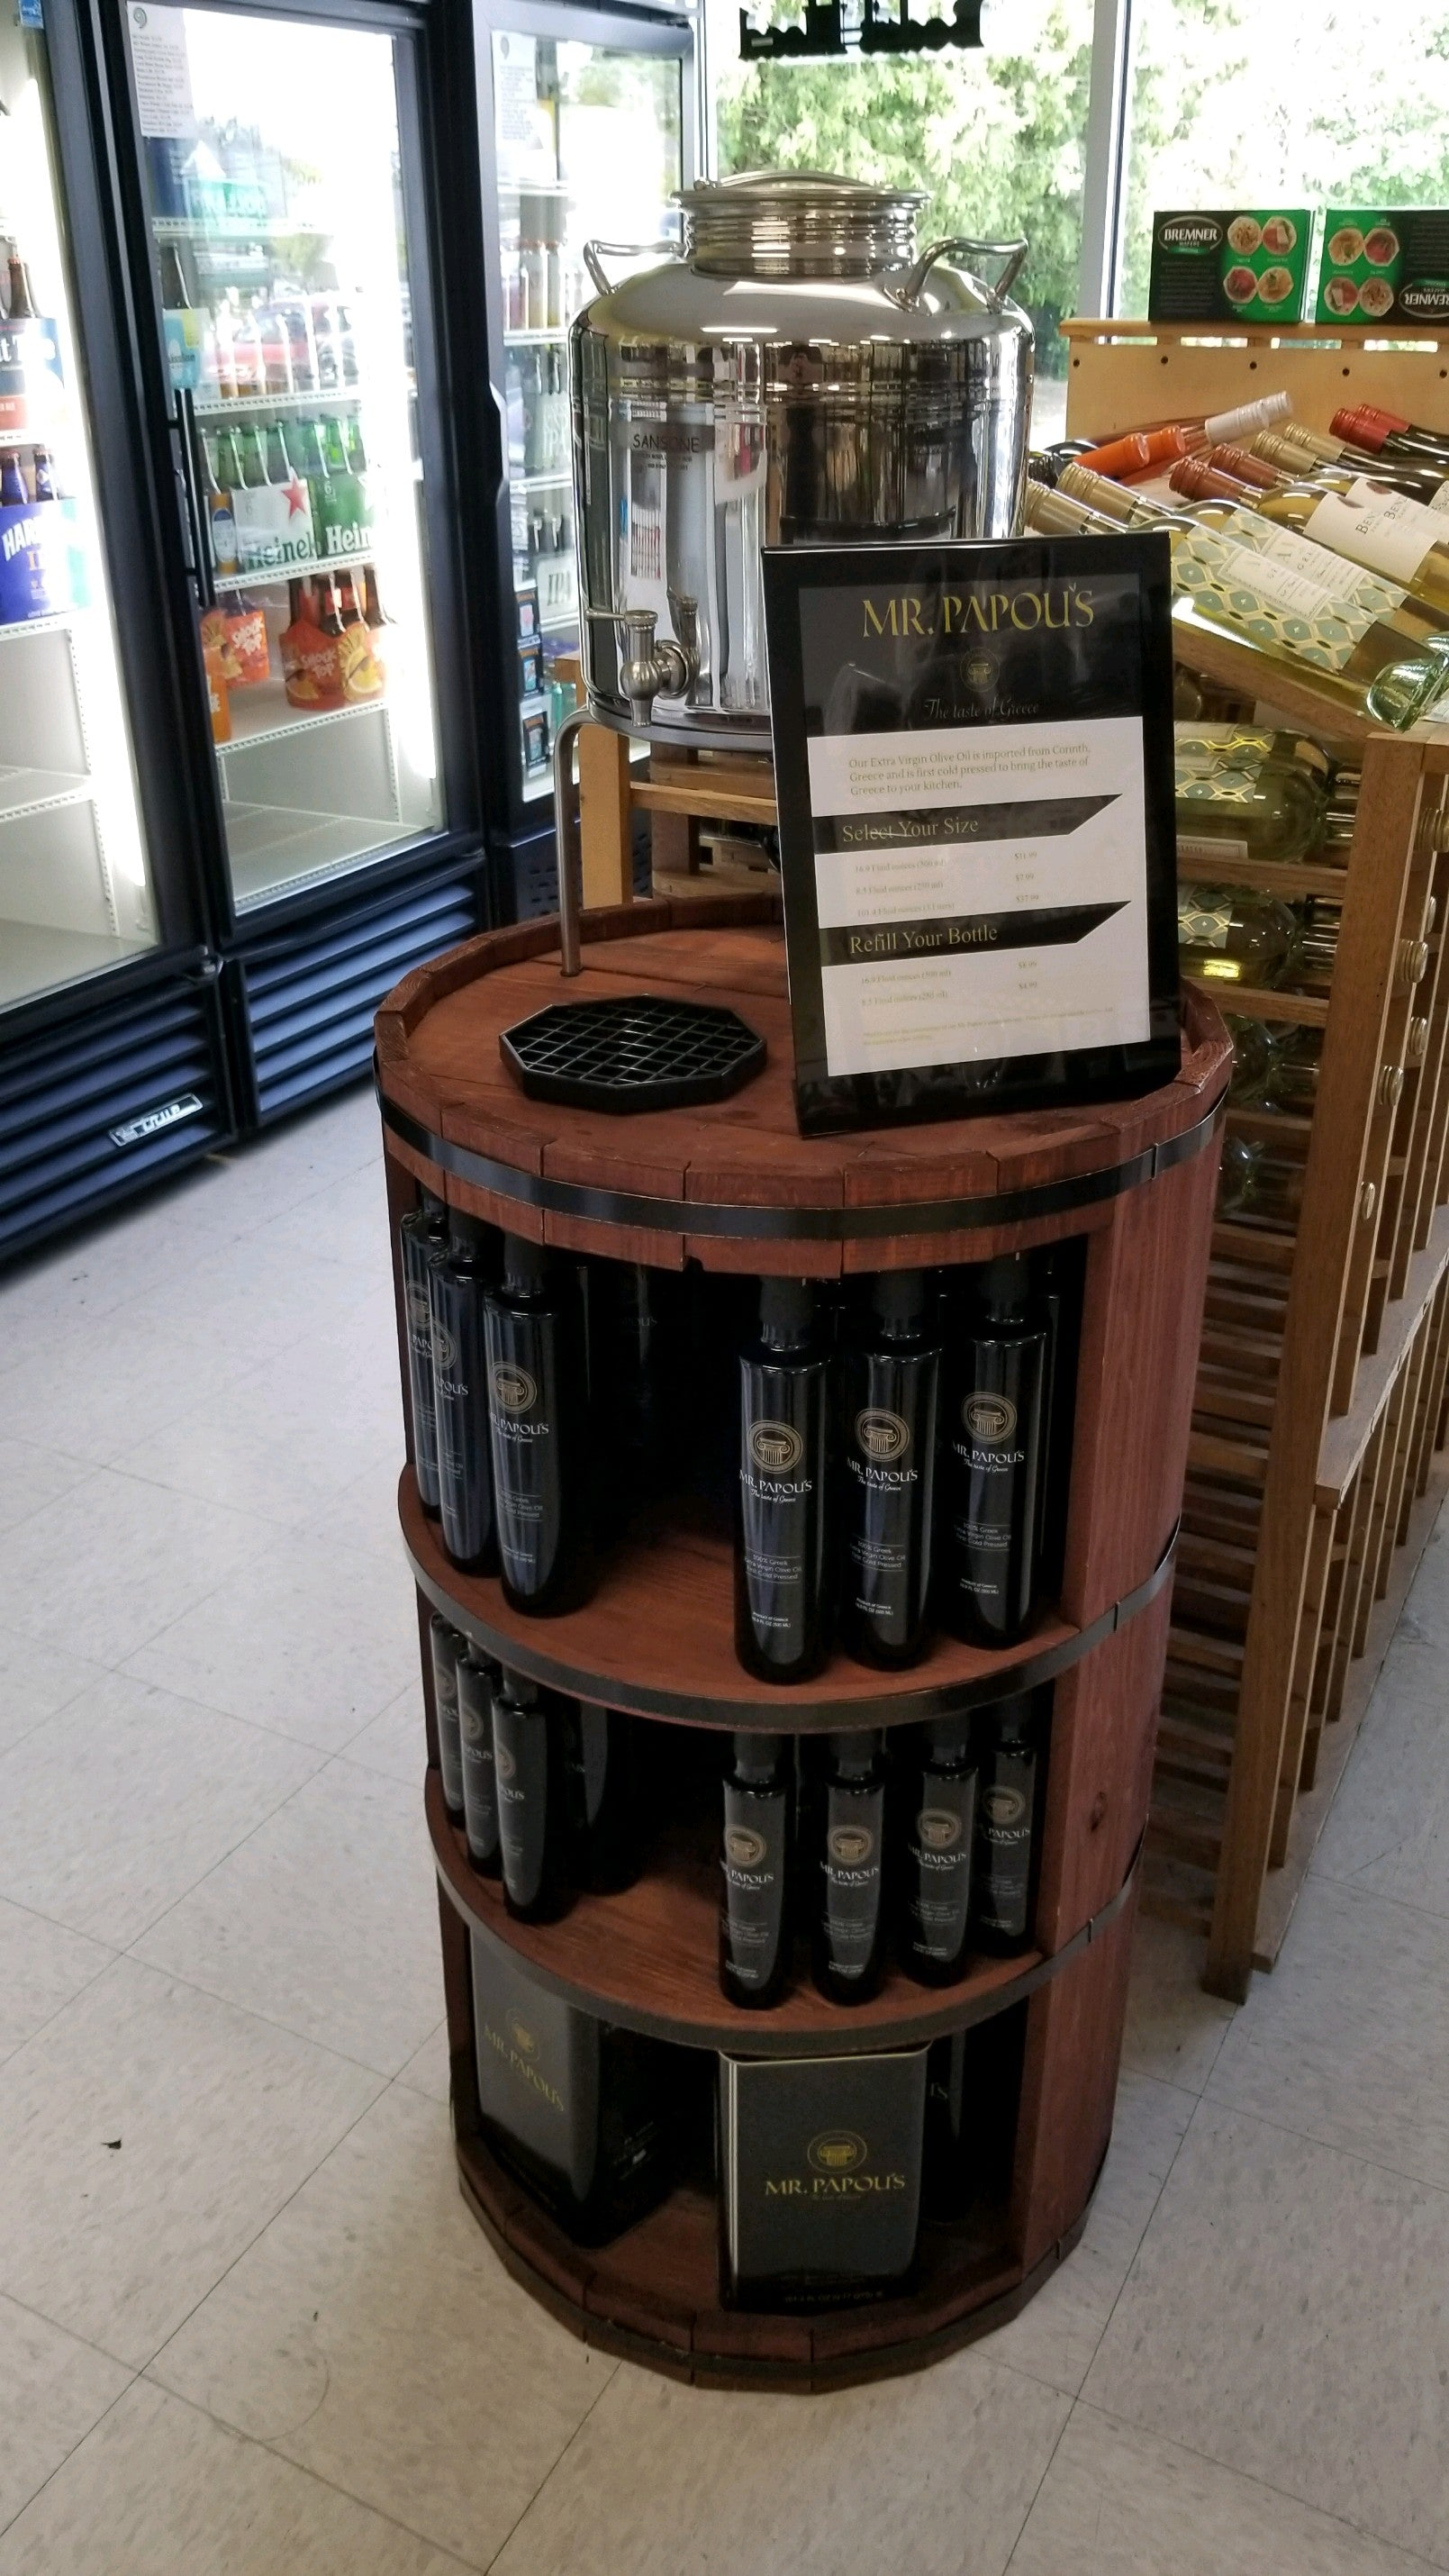 Mr. Papou's Barrel Display